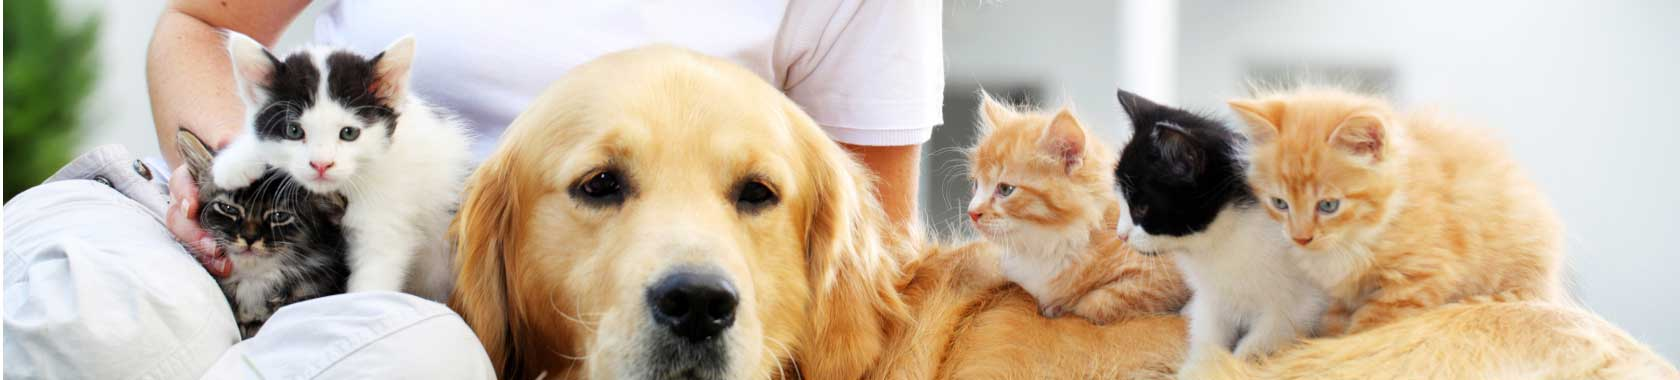 pet-food-general-dog-cats